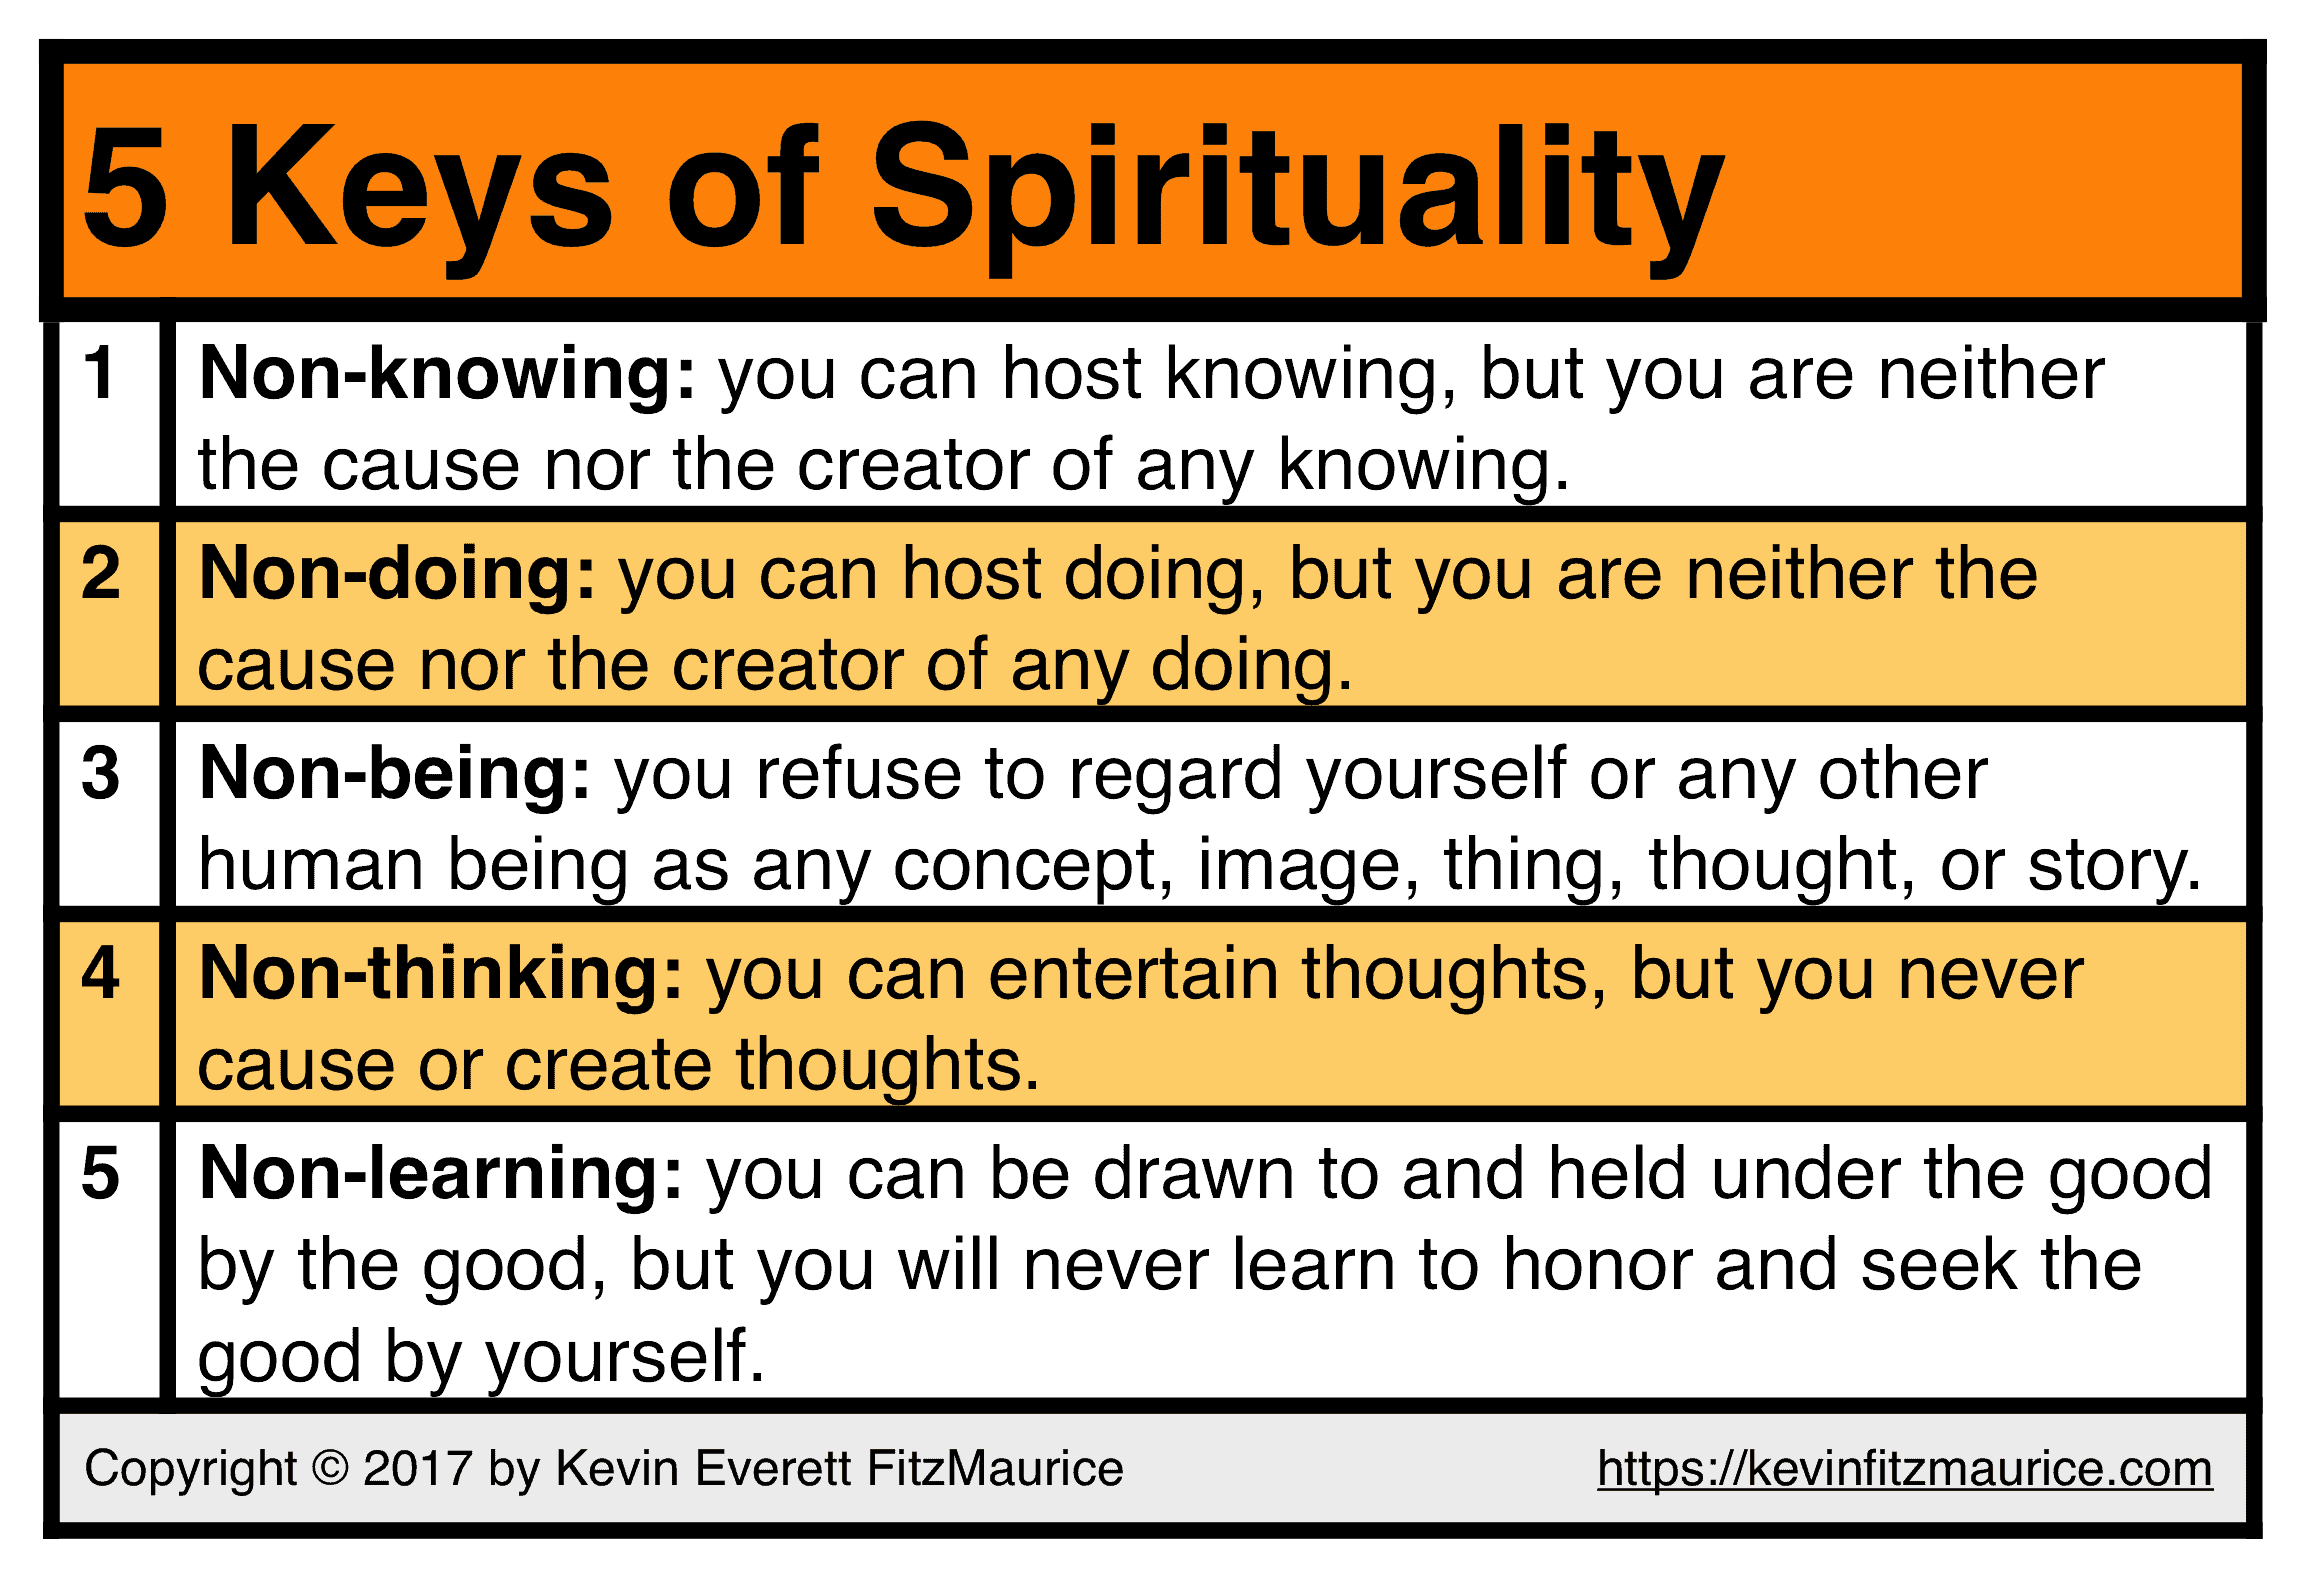 Table of the 5 Keys of Spirituality